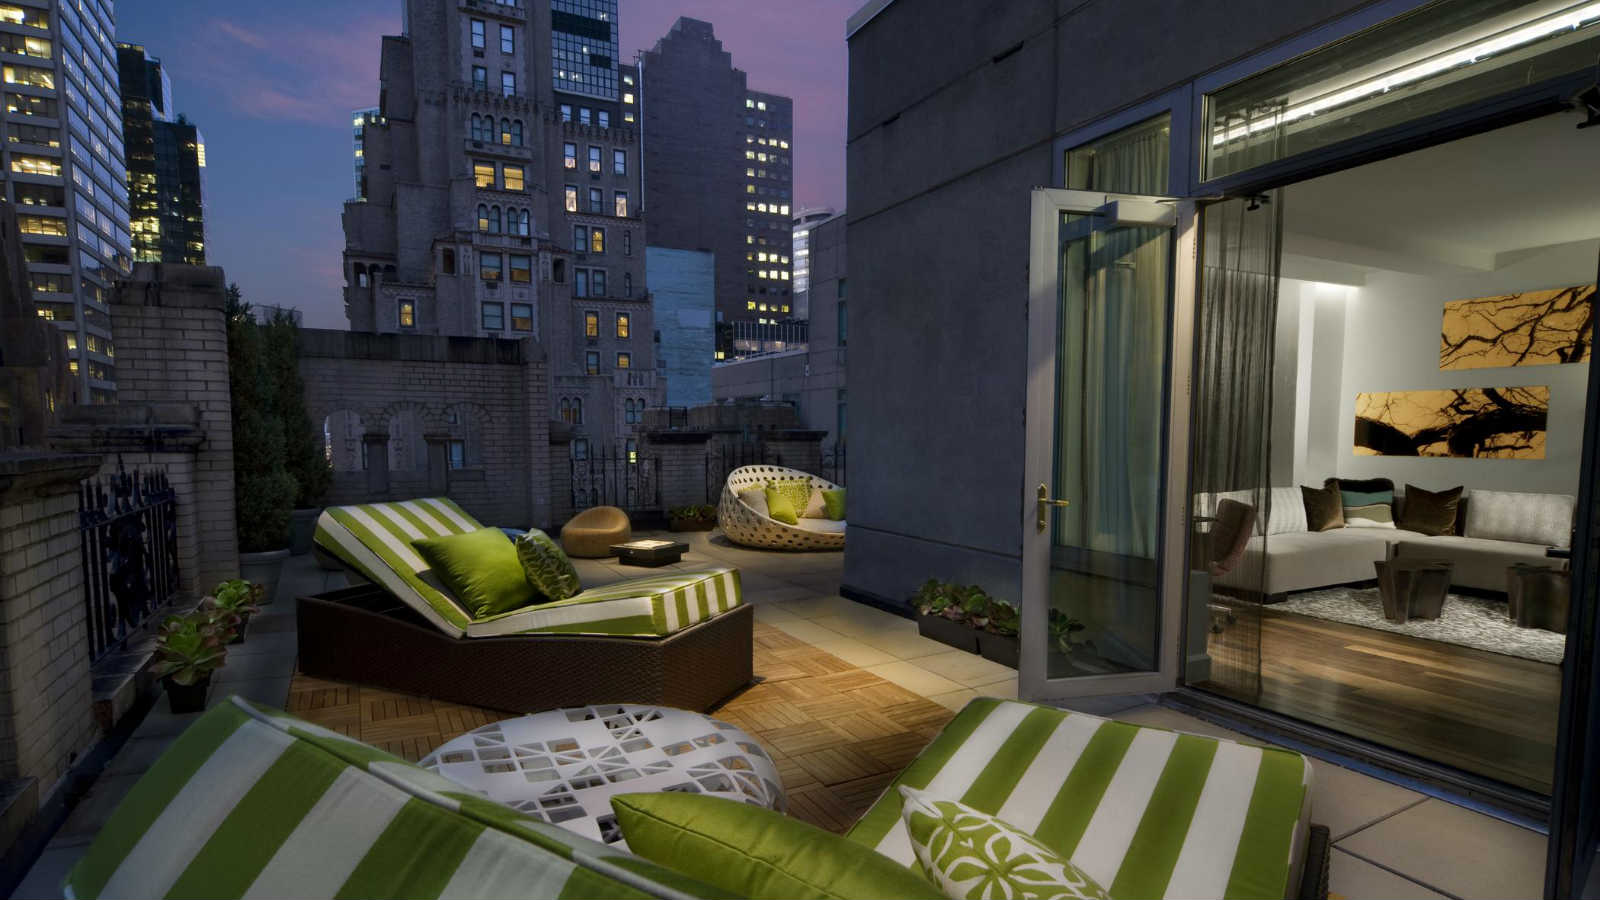 W hotel new york urlaubmesse deutschland for New york hotels